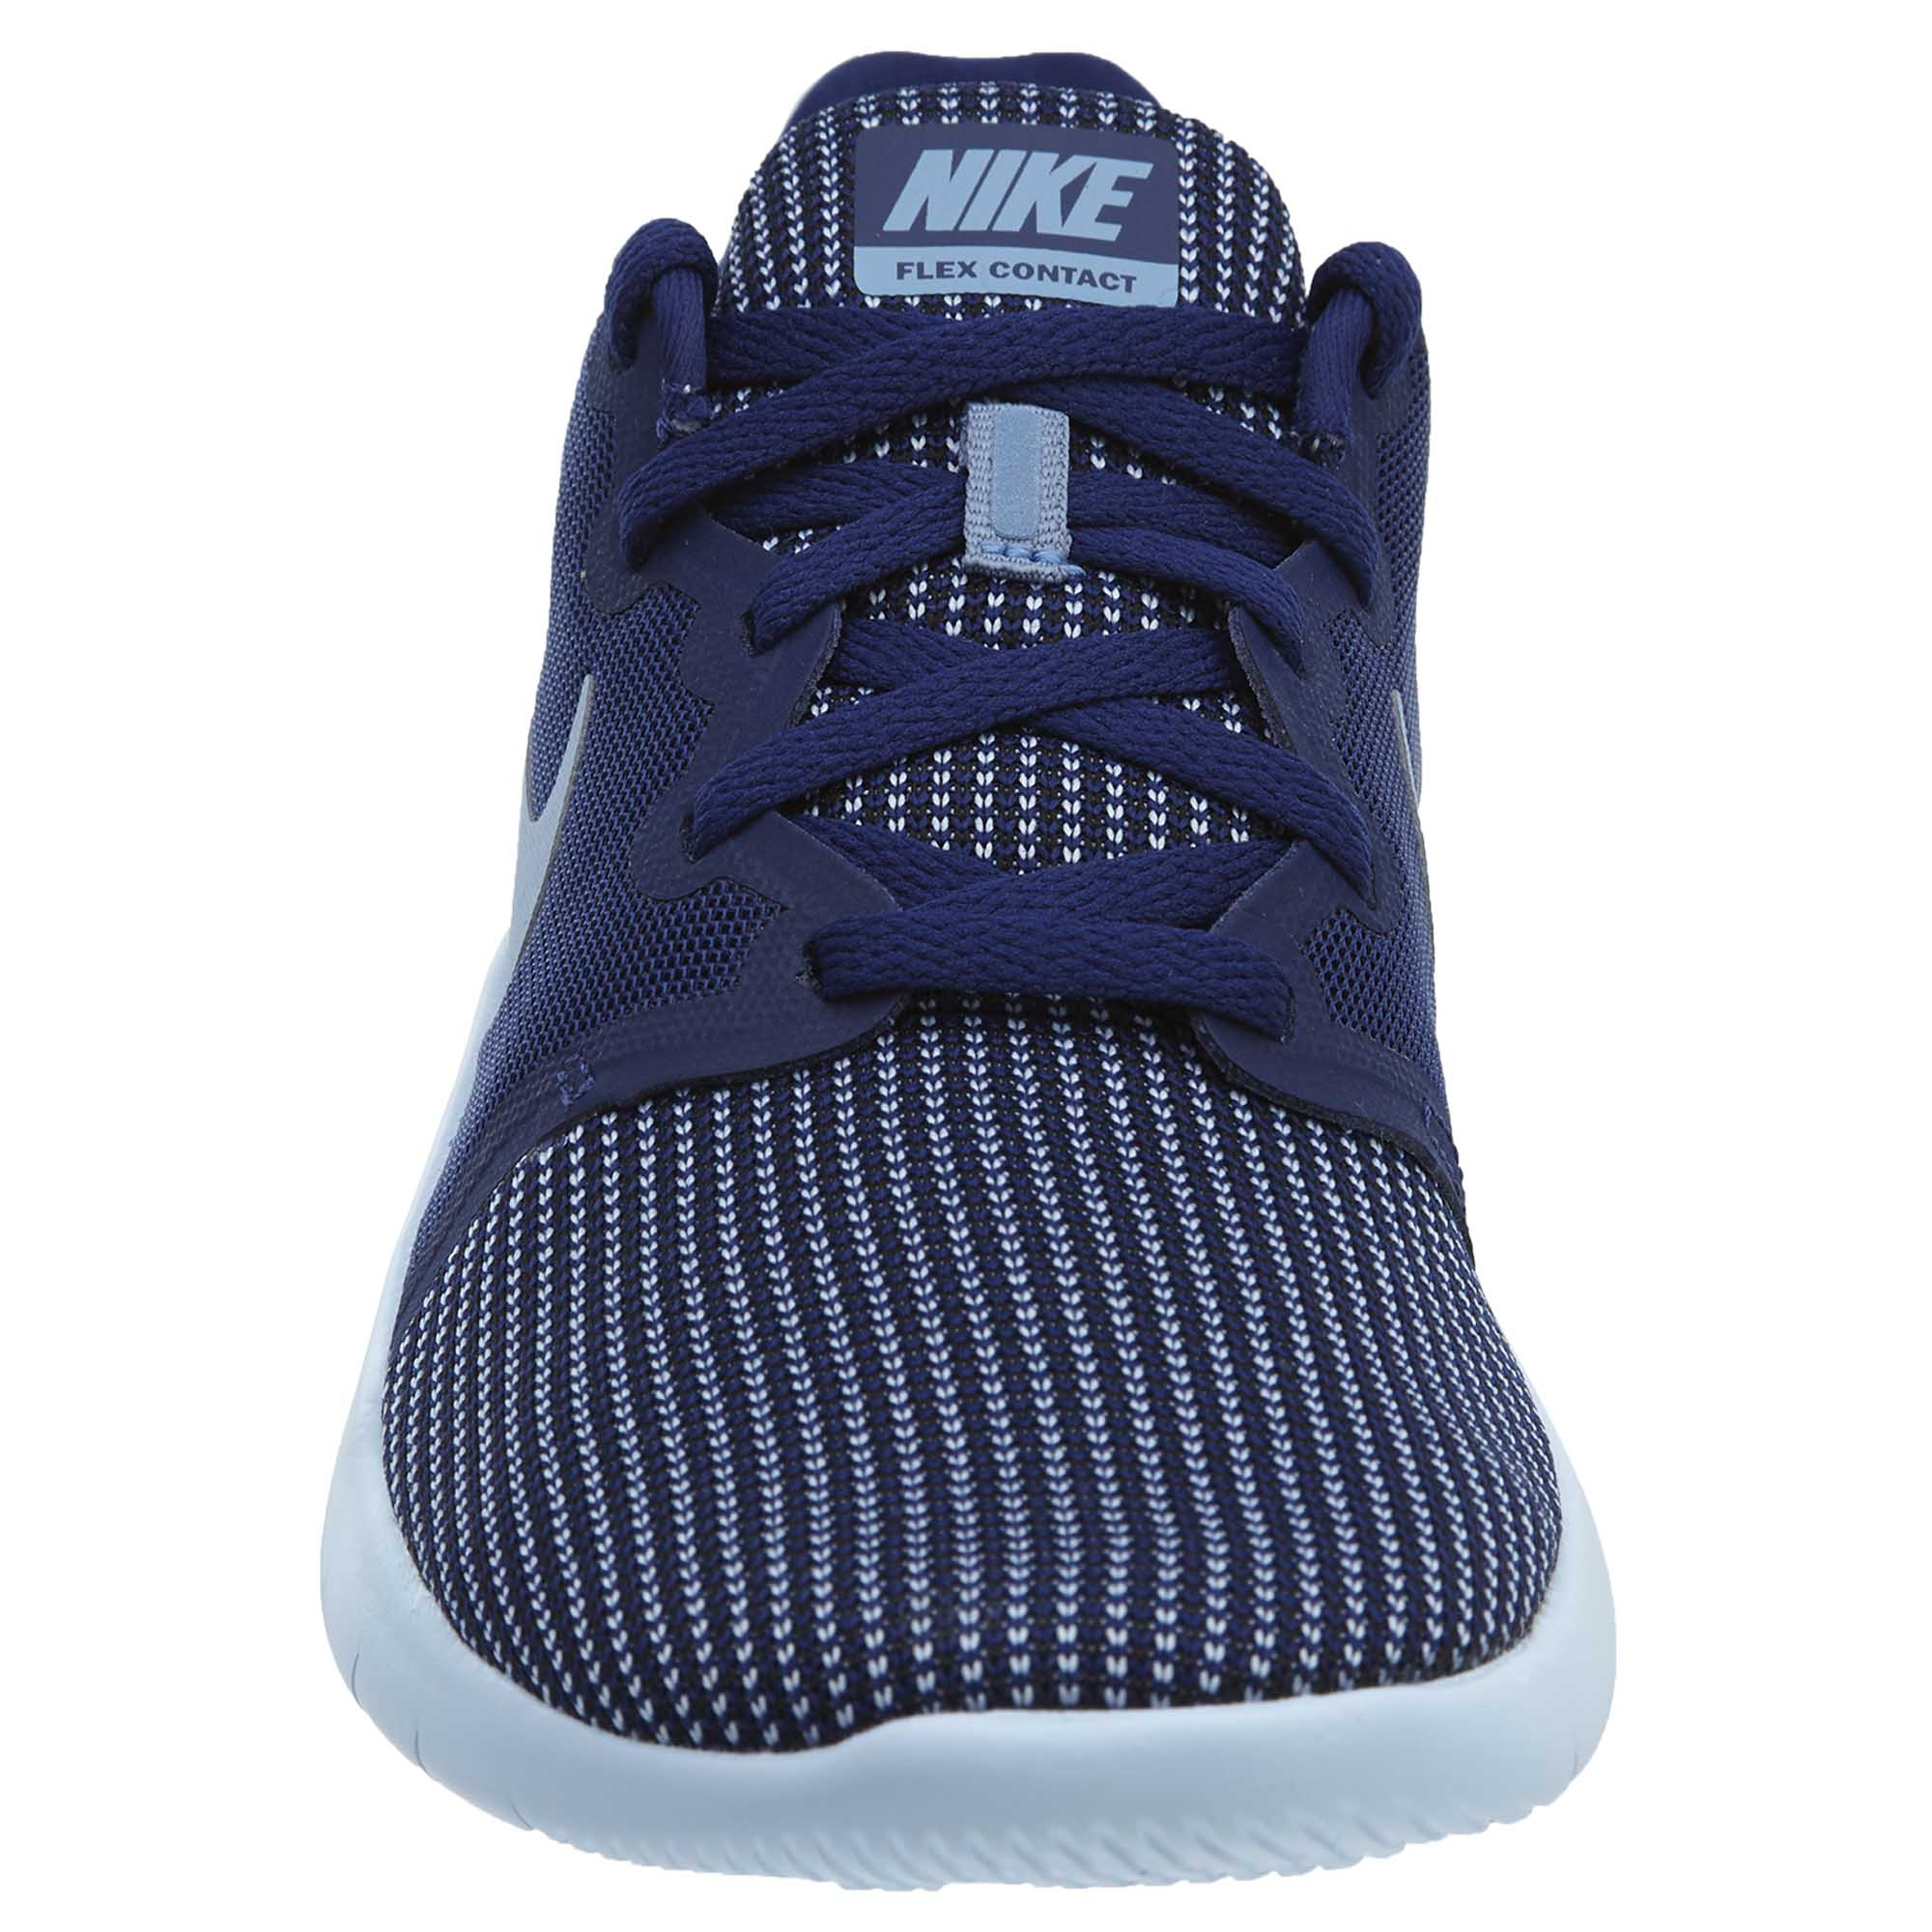 c40813dc8efa9 Nike Flex Contact 2 Womens Style   Aa7409-400. NIKE   Athletic Shoes    Sneakers